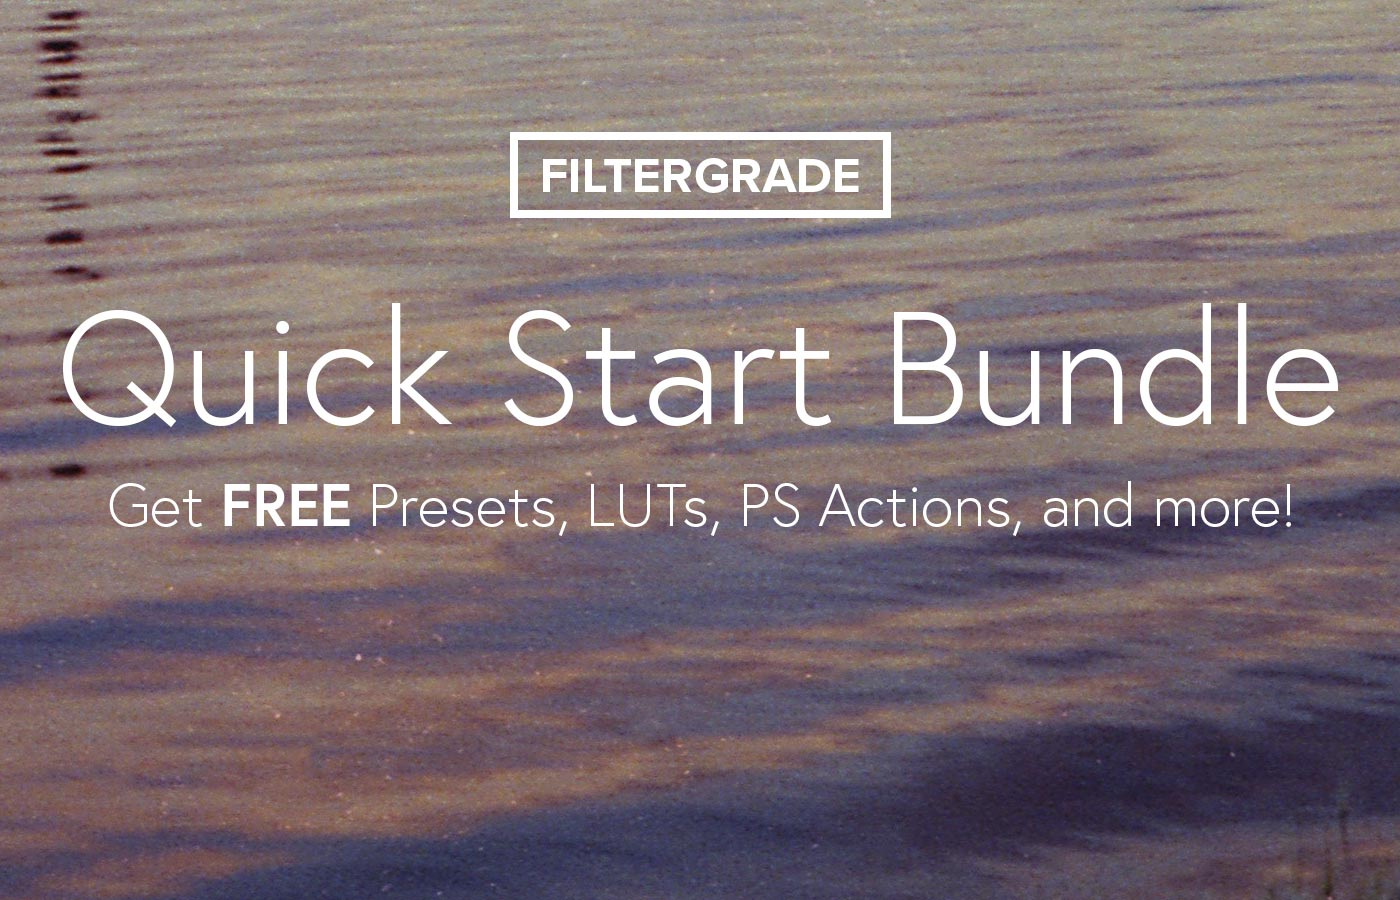 FilterGrade Quick Start Bundle